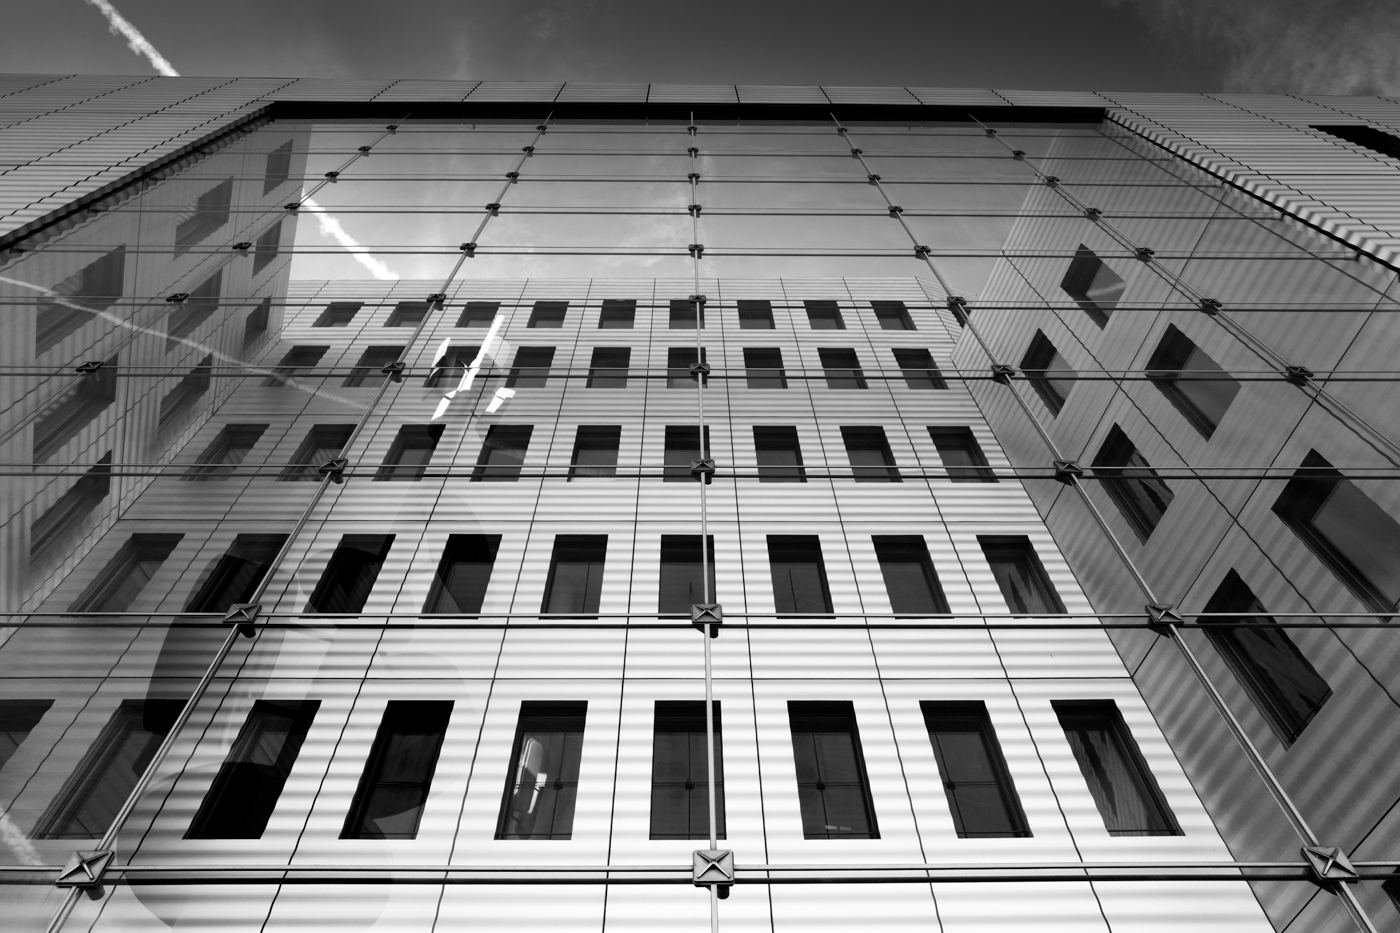 architecture photography black and white leica Q